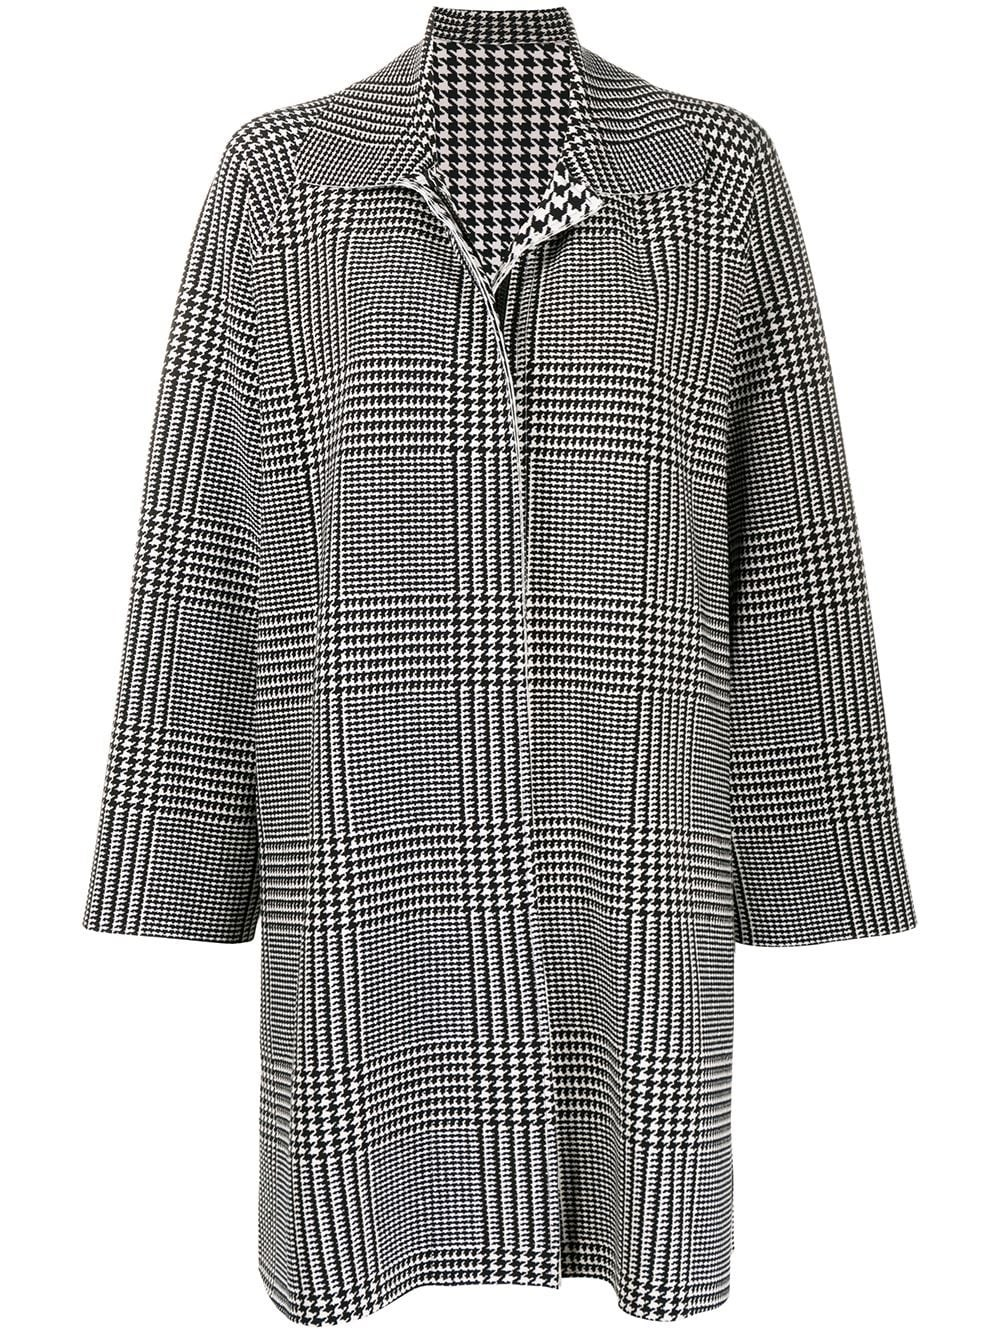 NORMA KAMALI Houndstooth Draped Coat